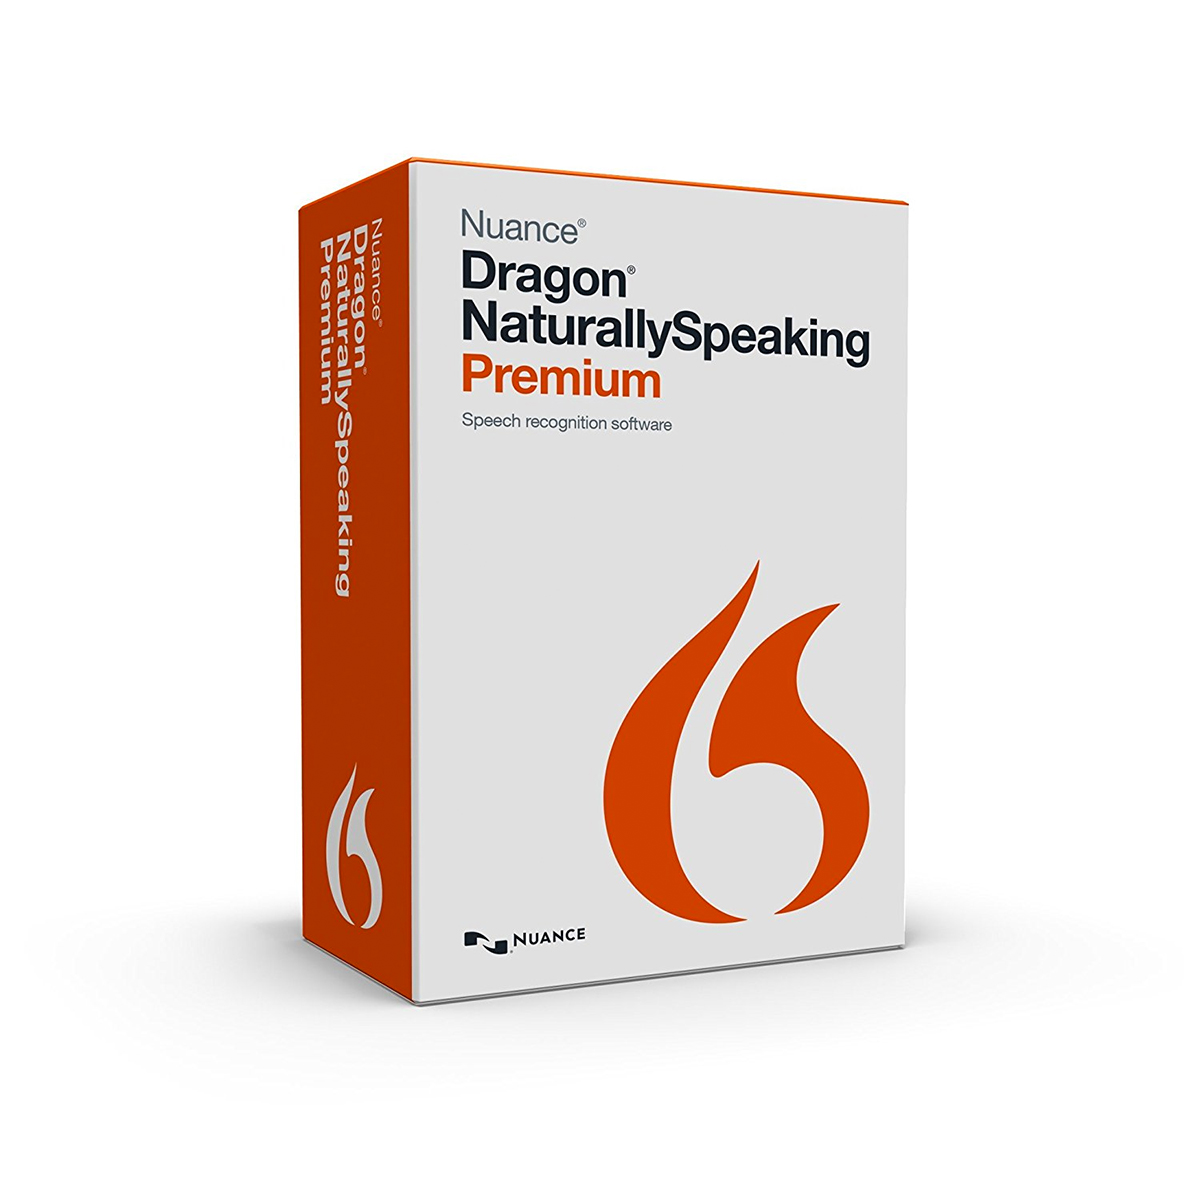 Nuance Dragon NaturallySpeaking Premium 13.0 International English Retail Upgrade